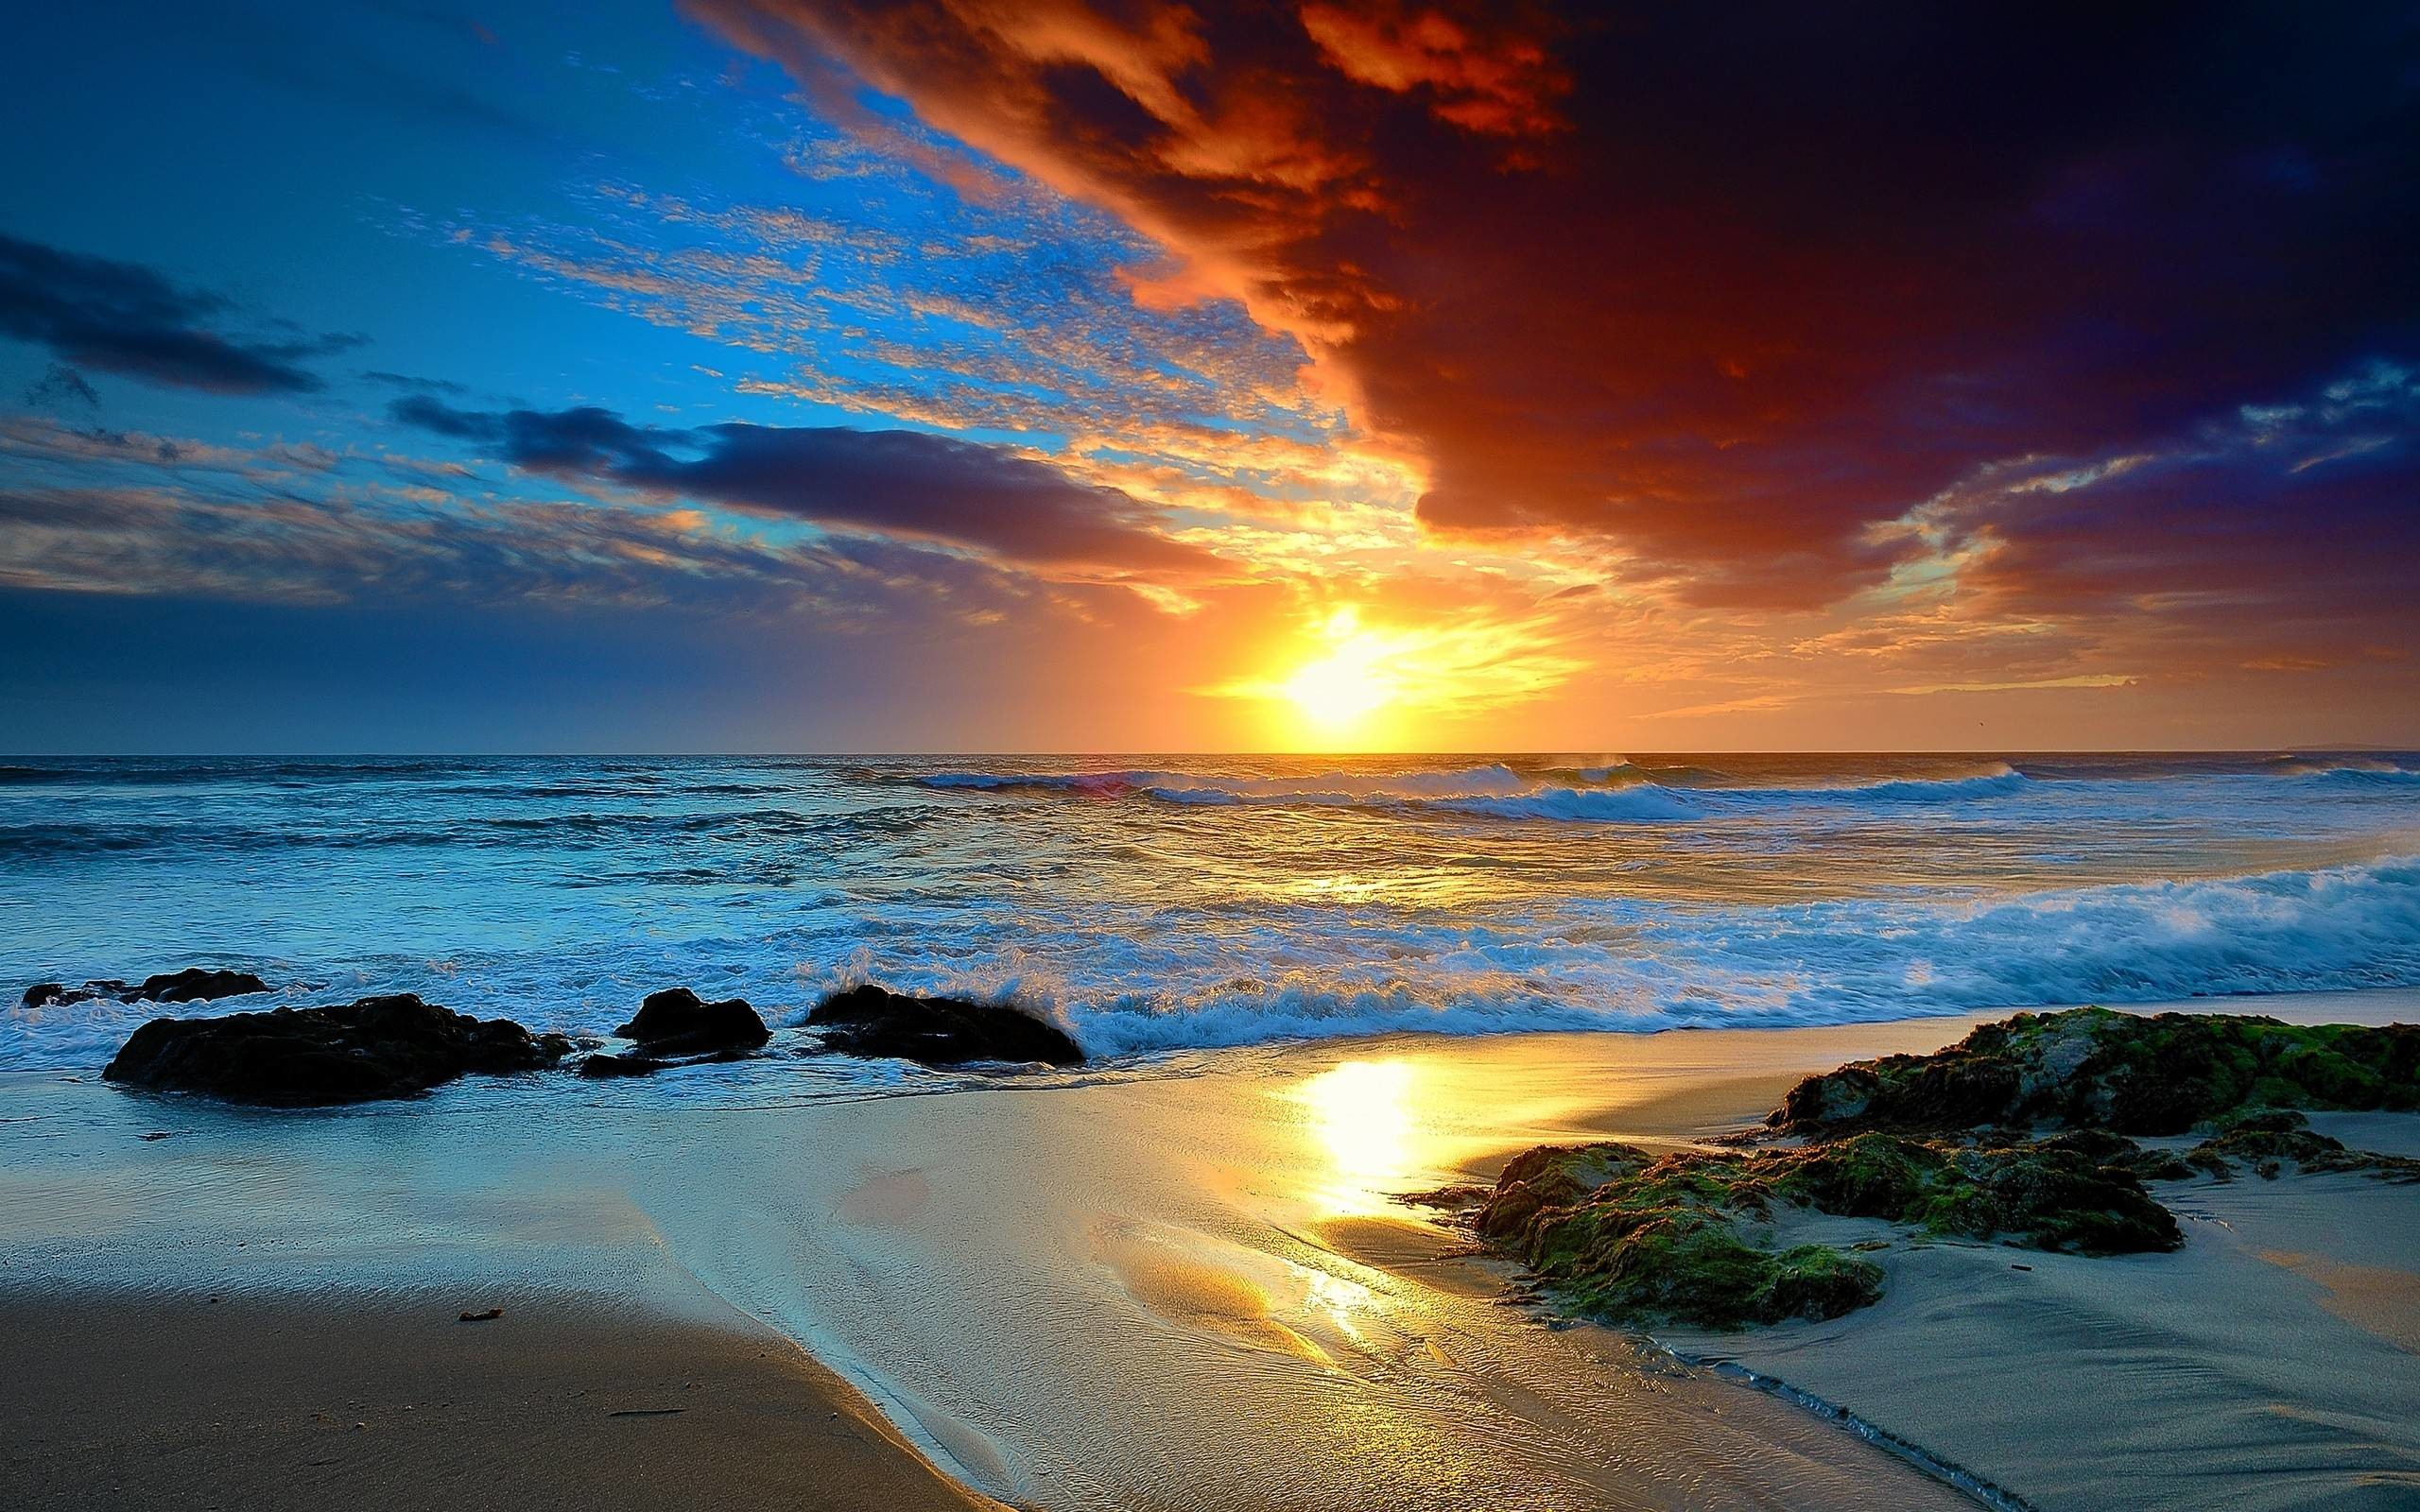 Beach Sunset Wallpaper 79 Images